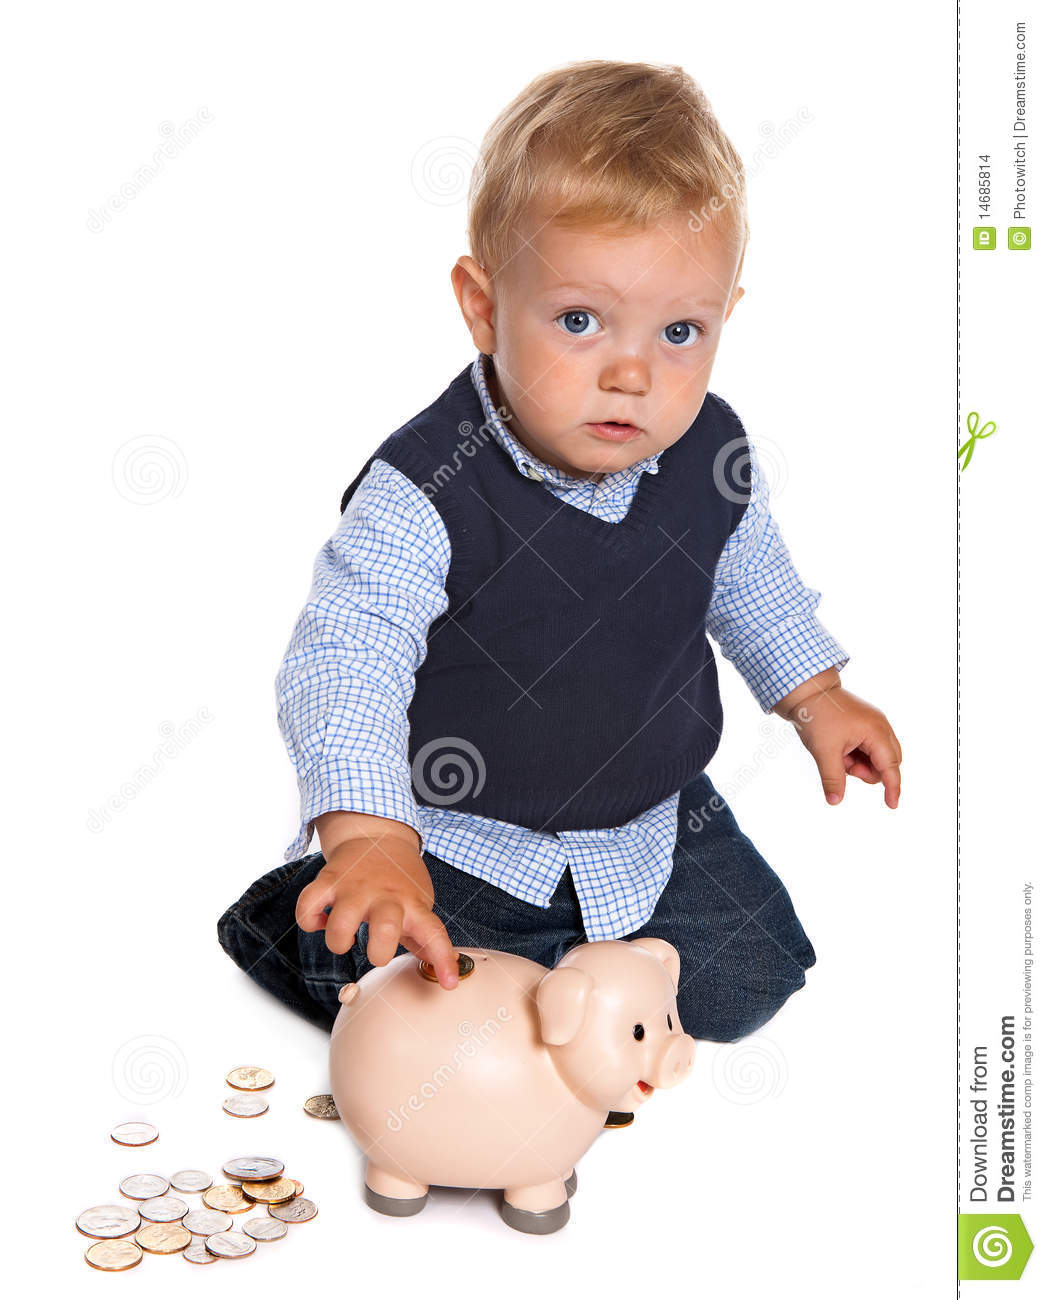 Piggy Banks For Little Boys Toddler With Piggy Bank Stock Images Image 14685814